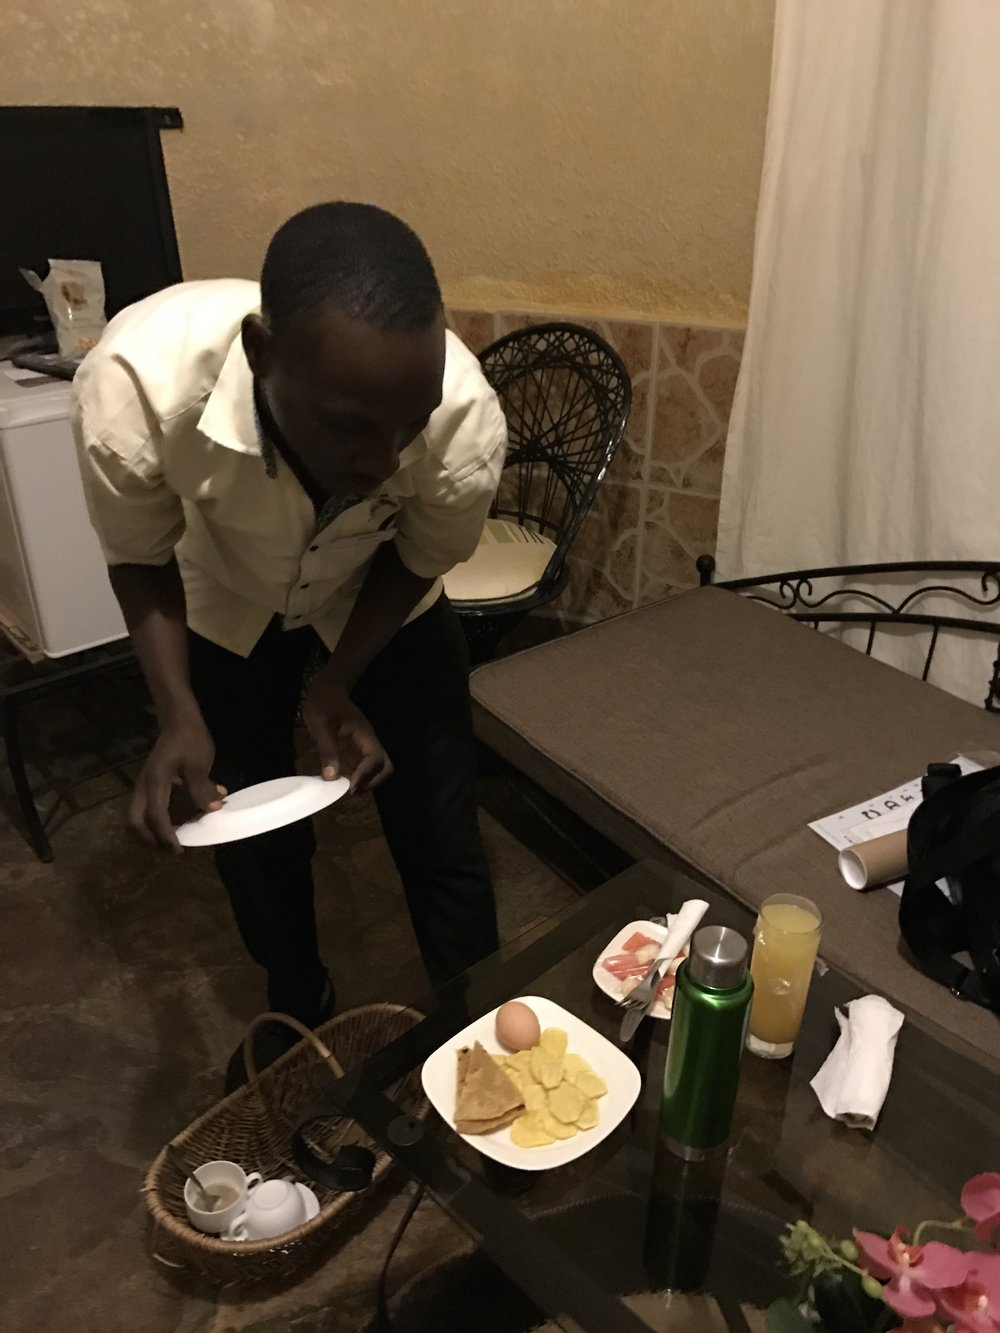 Bruce, one of the staff at the hotel, surprises me with breakfast to my room. I had asked for tea and he brought me the full breakfast!